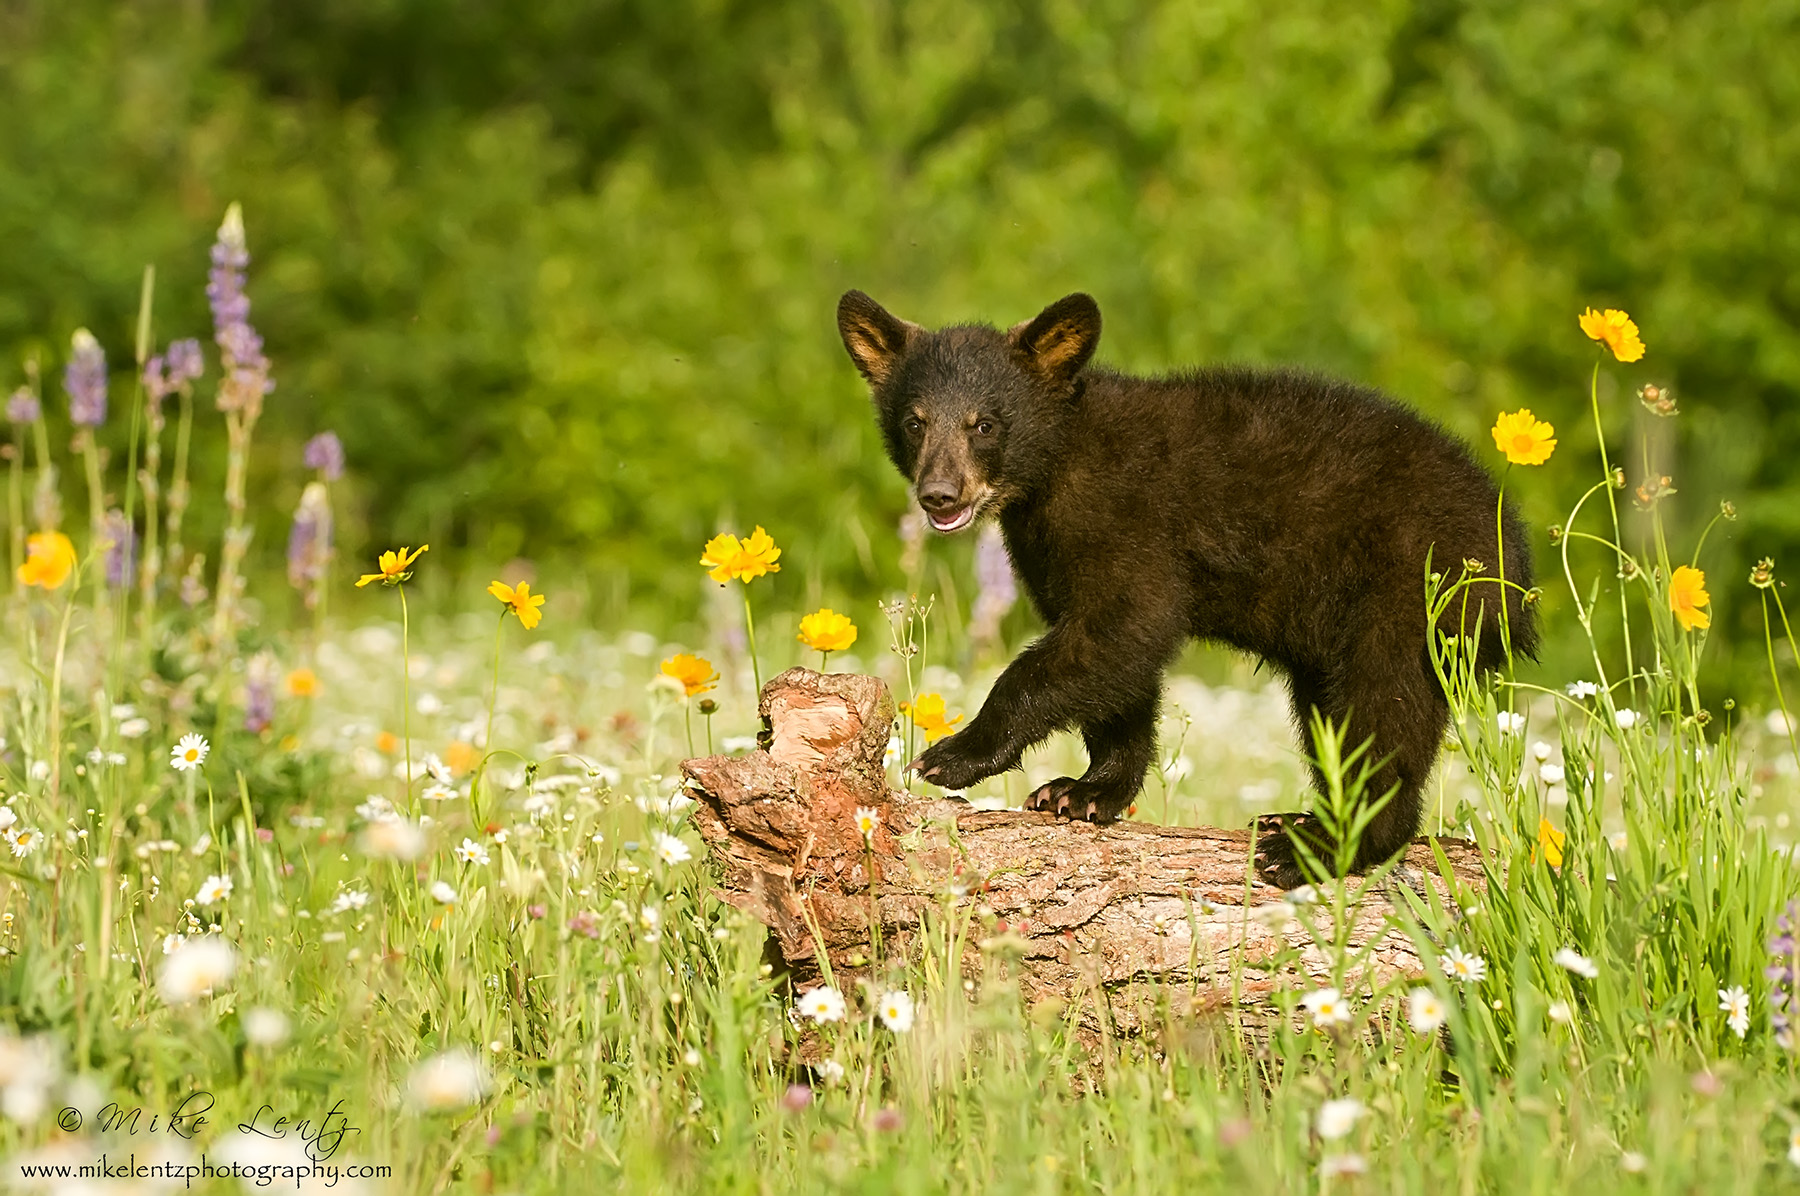 Black bear cub on log